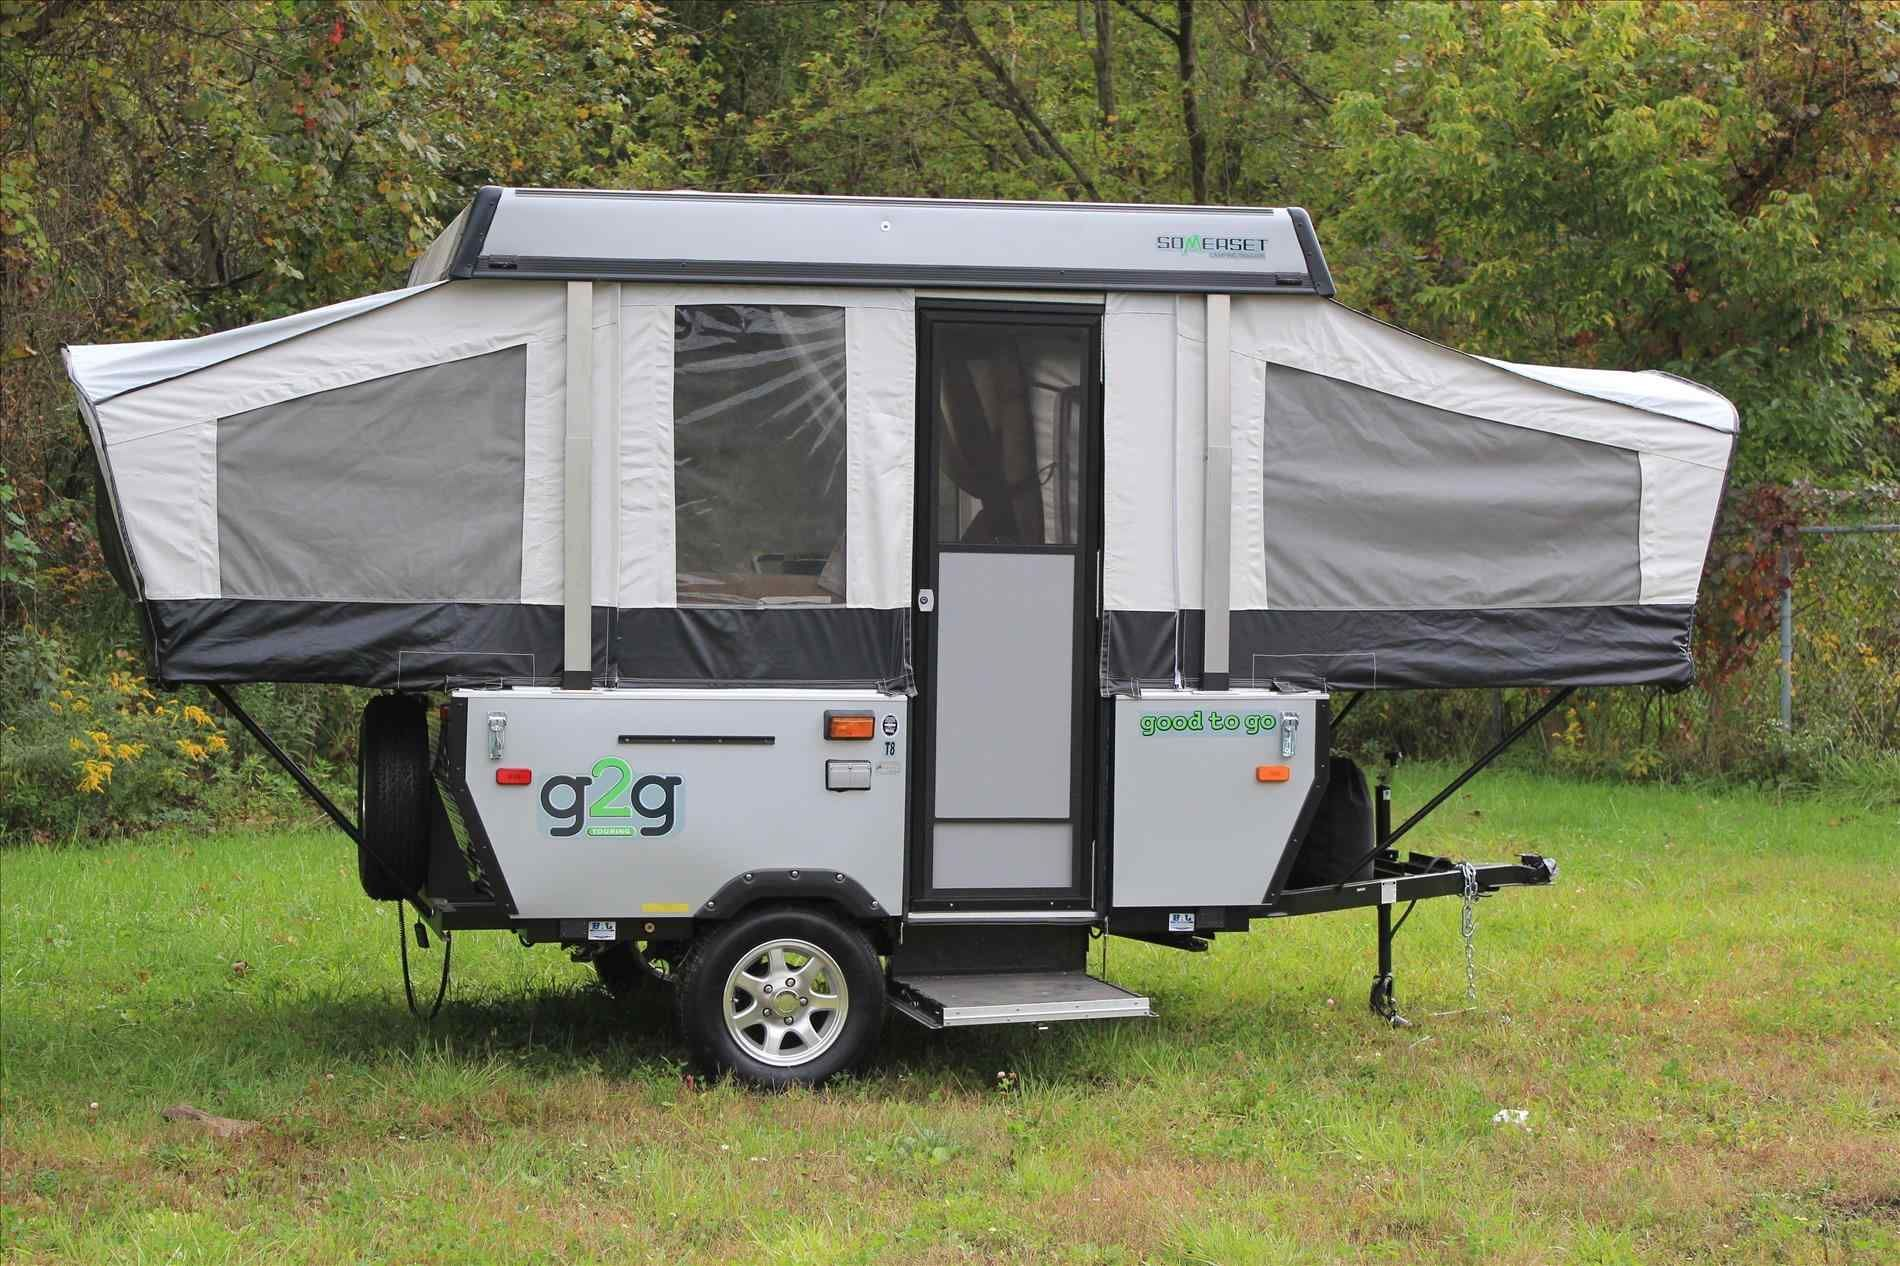 10 Top Camper Trailer With Toilet And Shower Outdoor Space Ideas